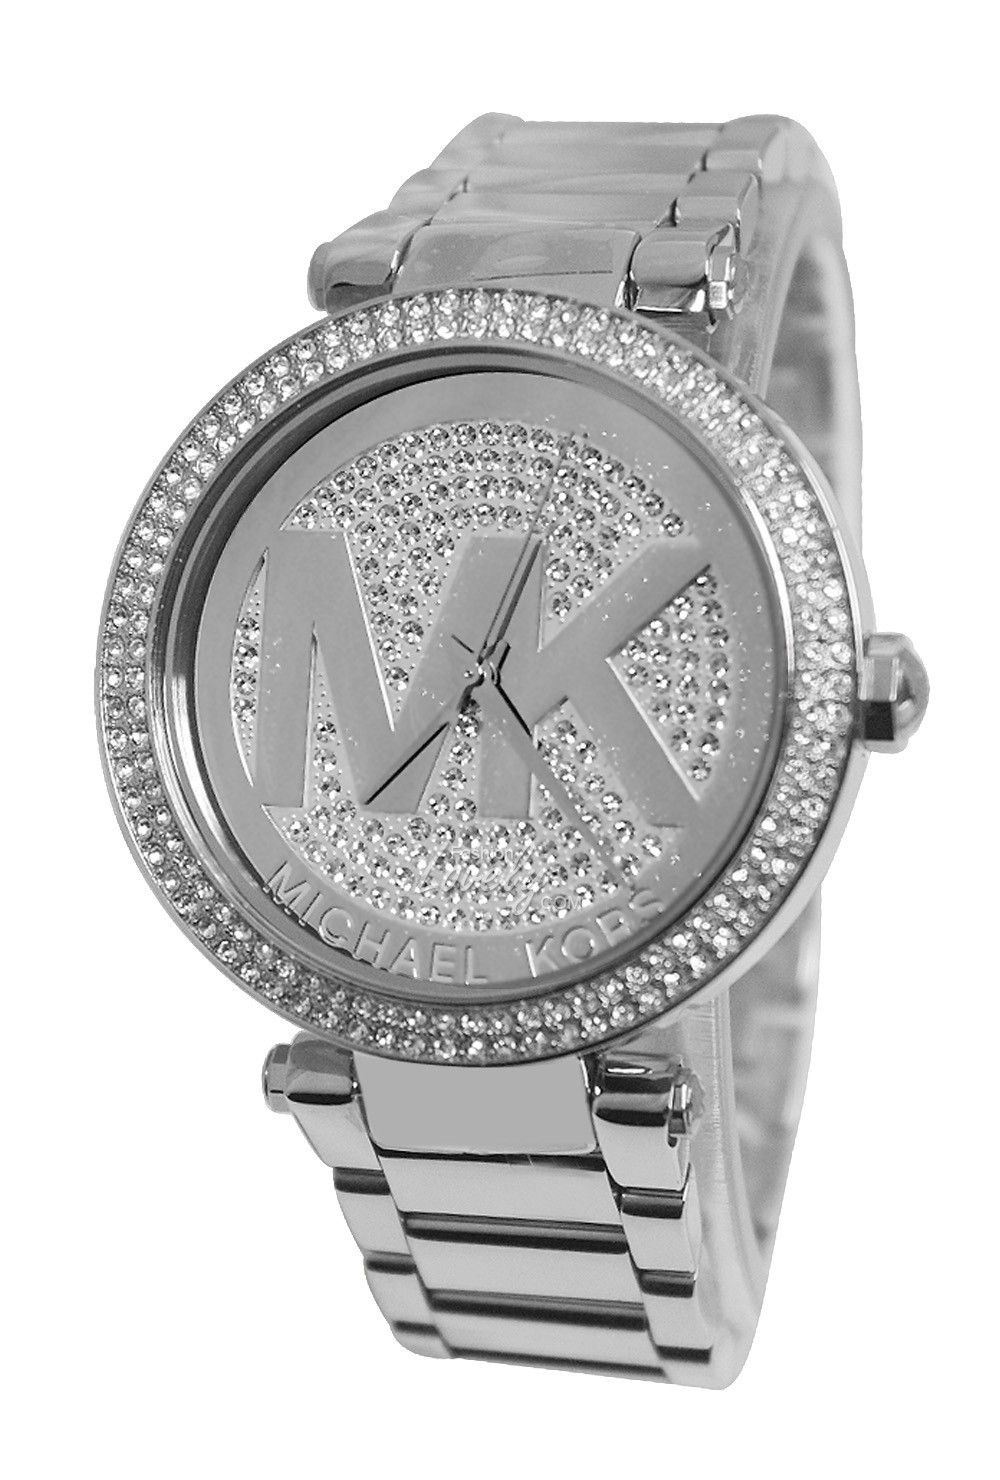 0146d574d462 นาฬิกาผู้หญิง Michael Kors MK5925 Parker Silver Crystal Pave Dial Stainless  Steel